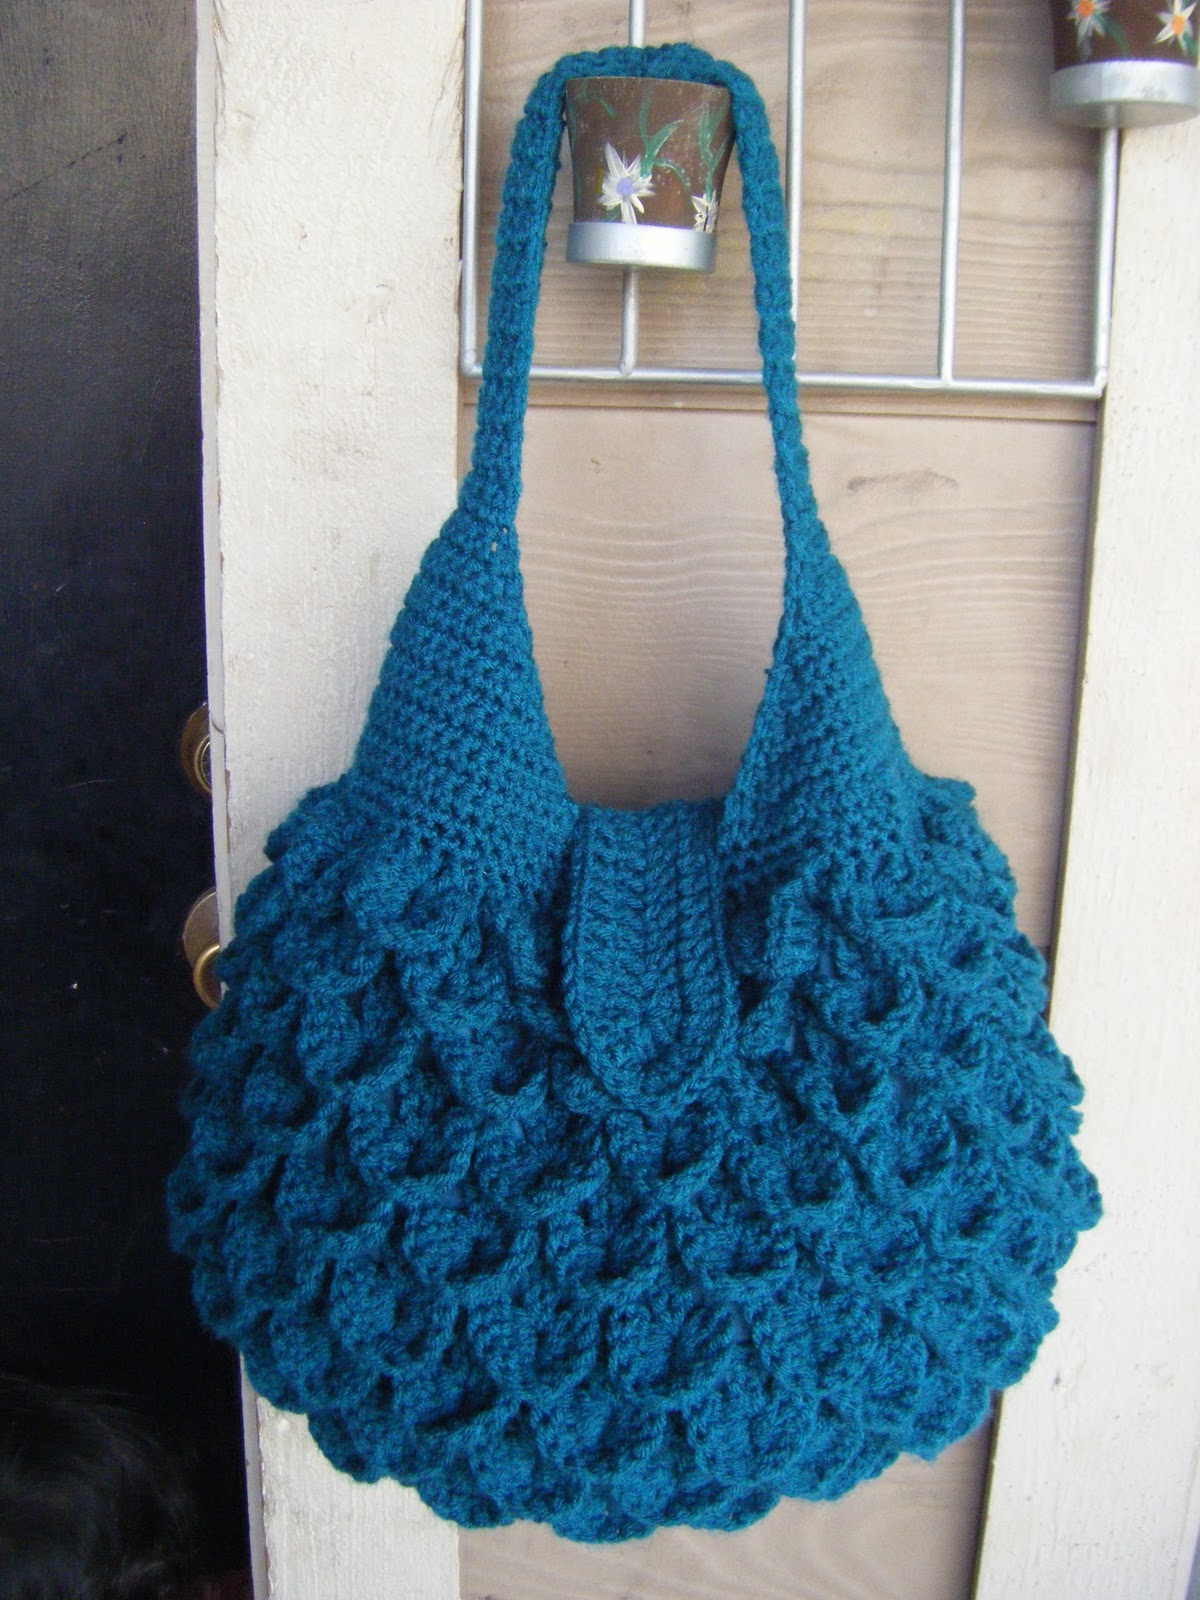 Free Crochet Patterns For Bags : Hip Hobo Bag - Christmas Crafts, Free Knitting Patterns, Free